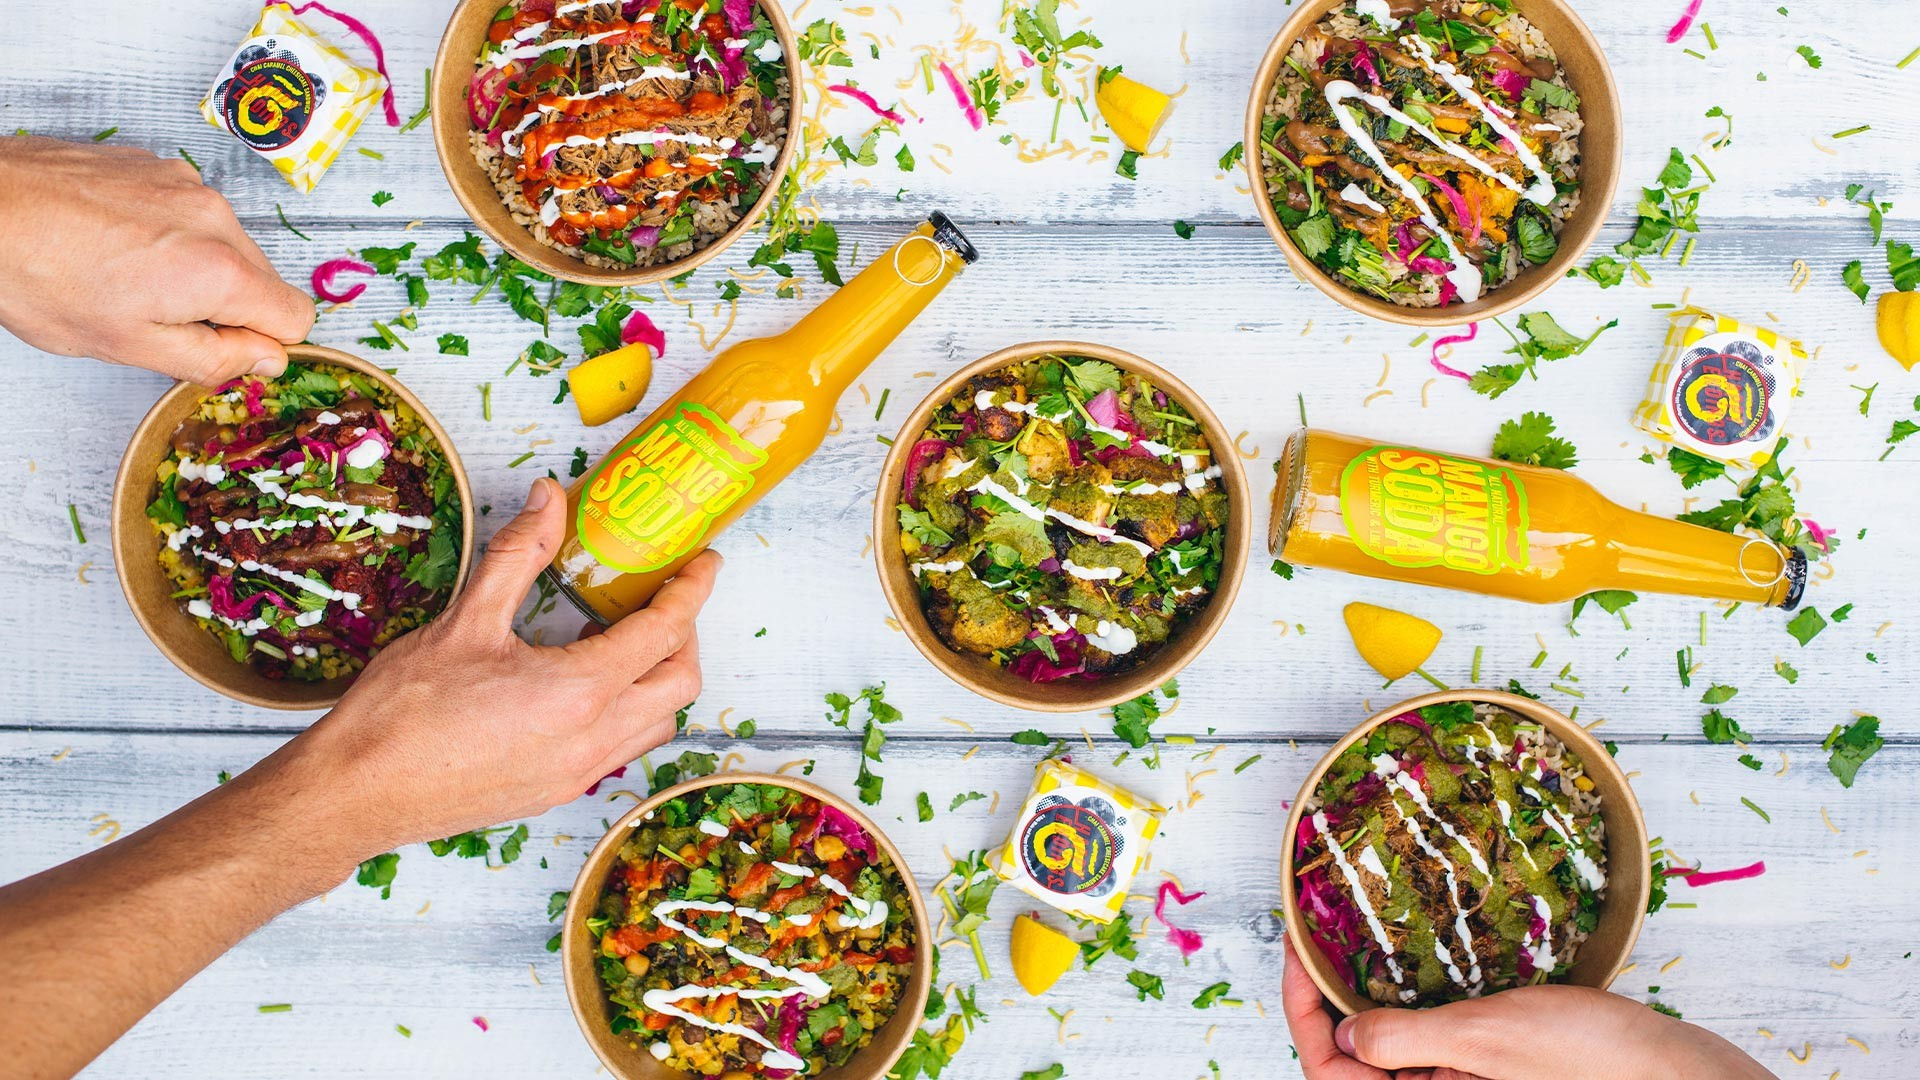 Rola Wala's colourful menu is great for meat eaters and vegans alike